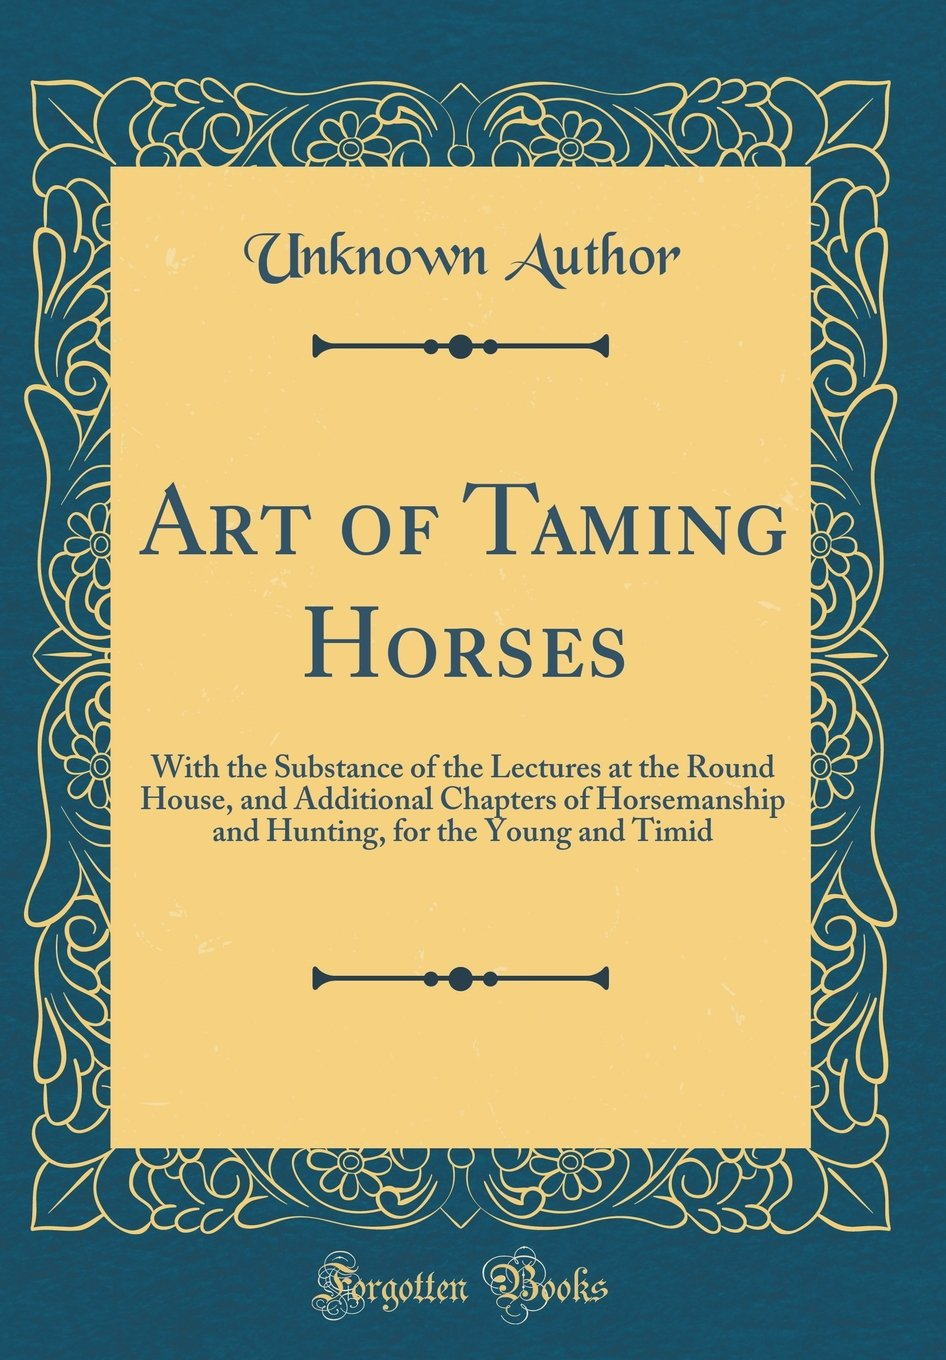 Art of Taming Horses: With the Substance of the Lectures at the Round House, and Additional Chapters of Horsemanship and Hunting, for the Young and Timid (Classic Reprint) pdf epub